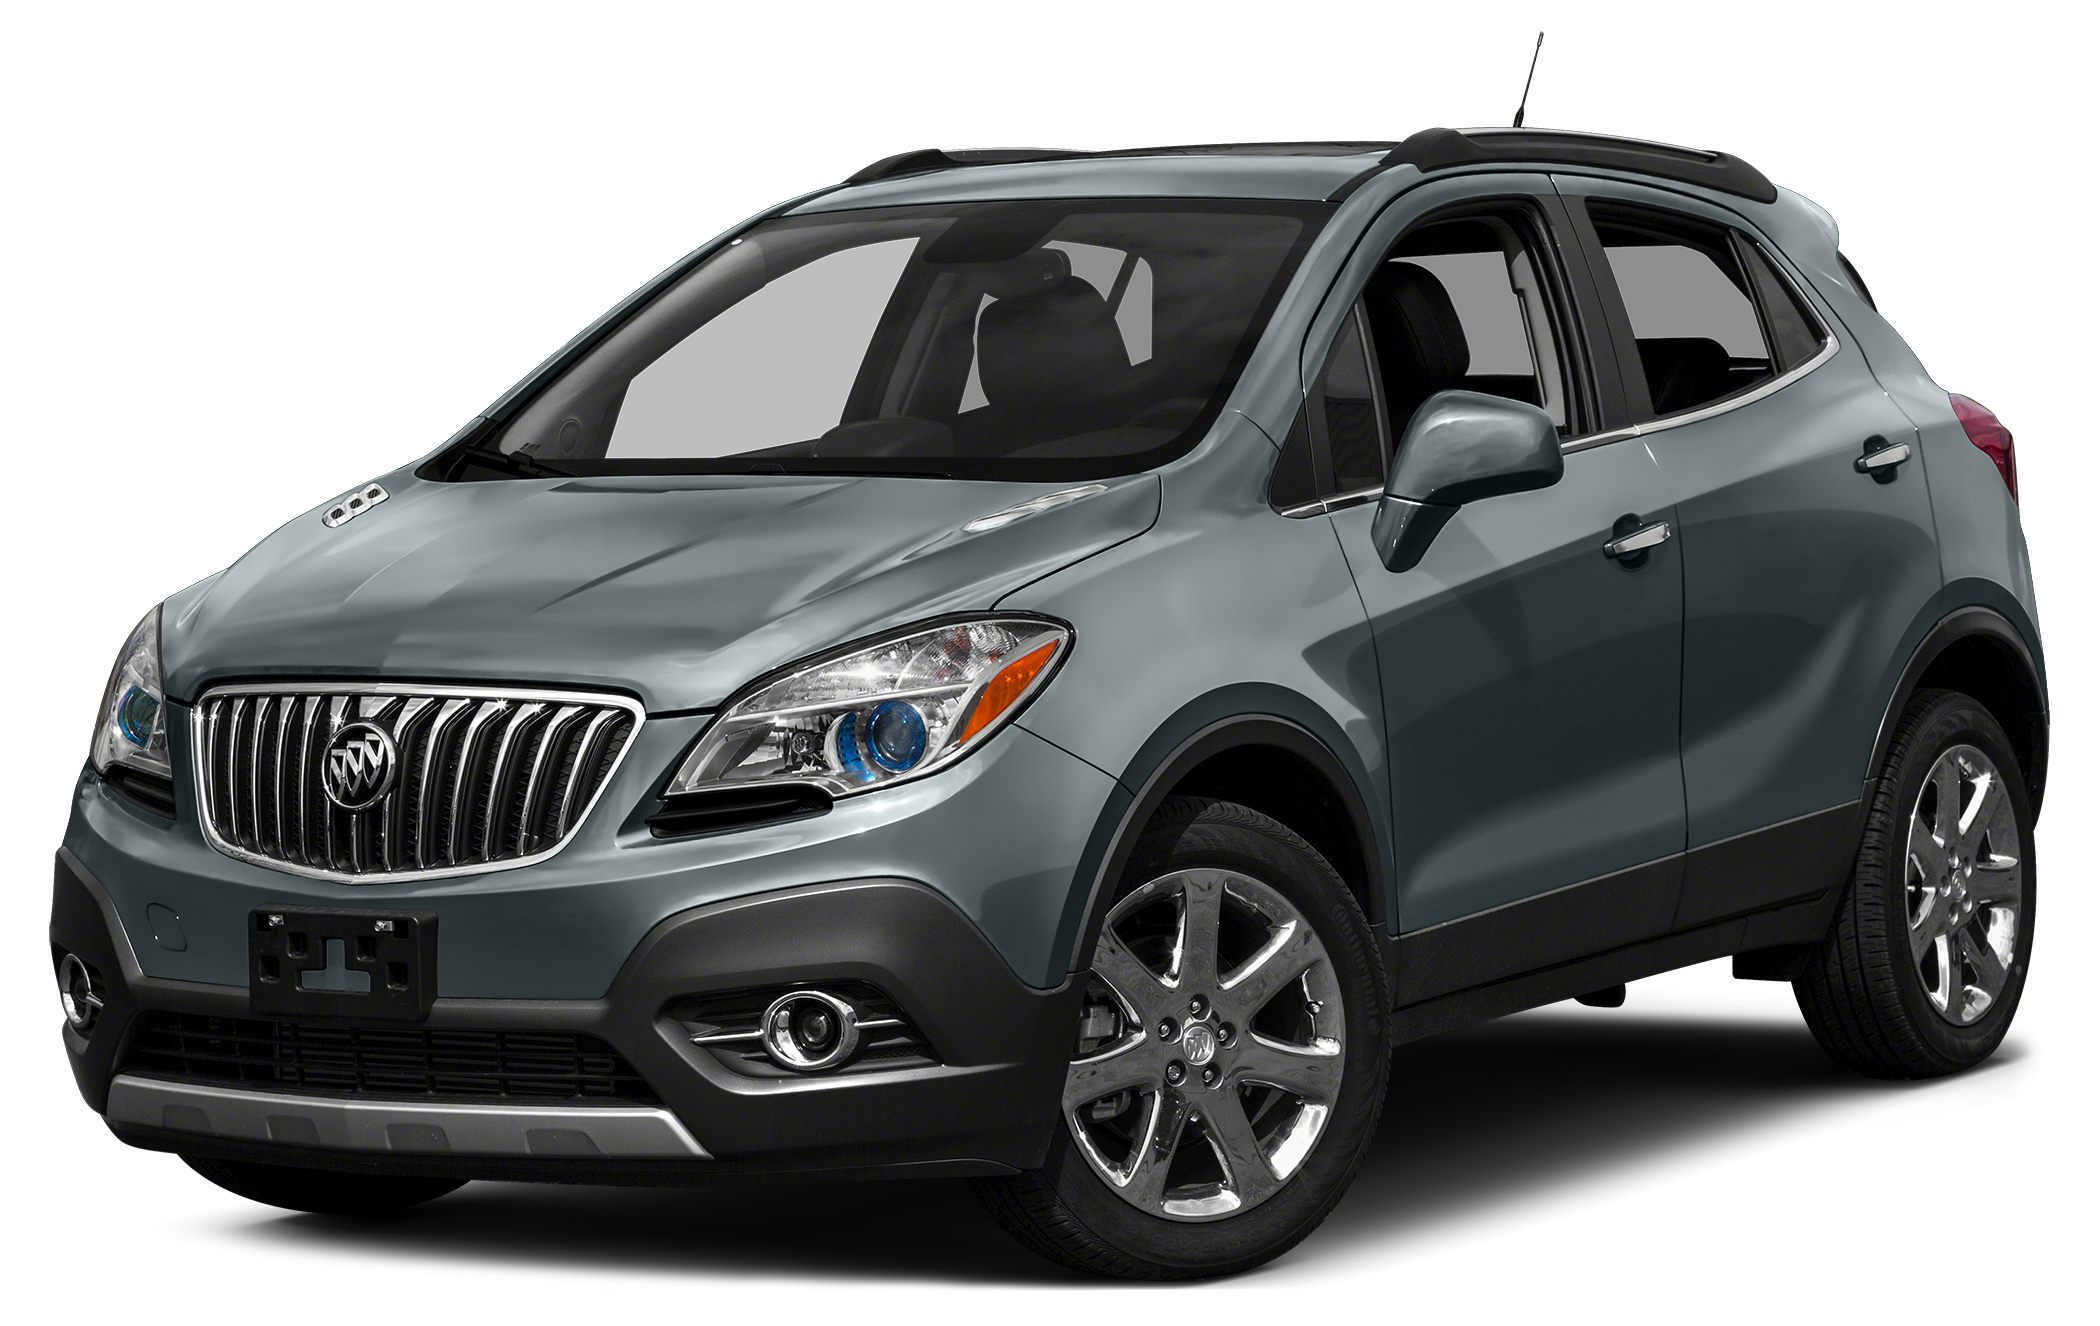 2015 Buick Encore Convenience FUEL EFFICIENT 33 MPG Hwy25 MPG City Excellent Condition ONLY 23